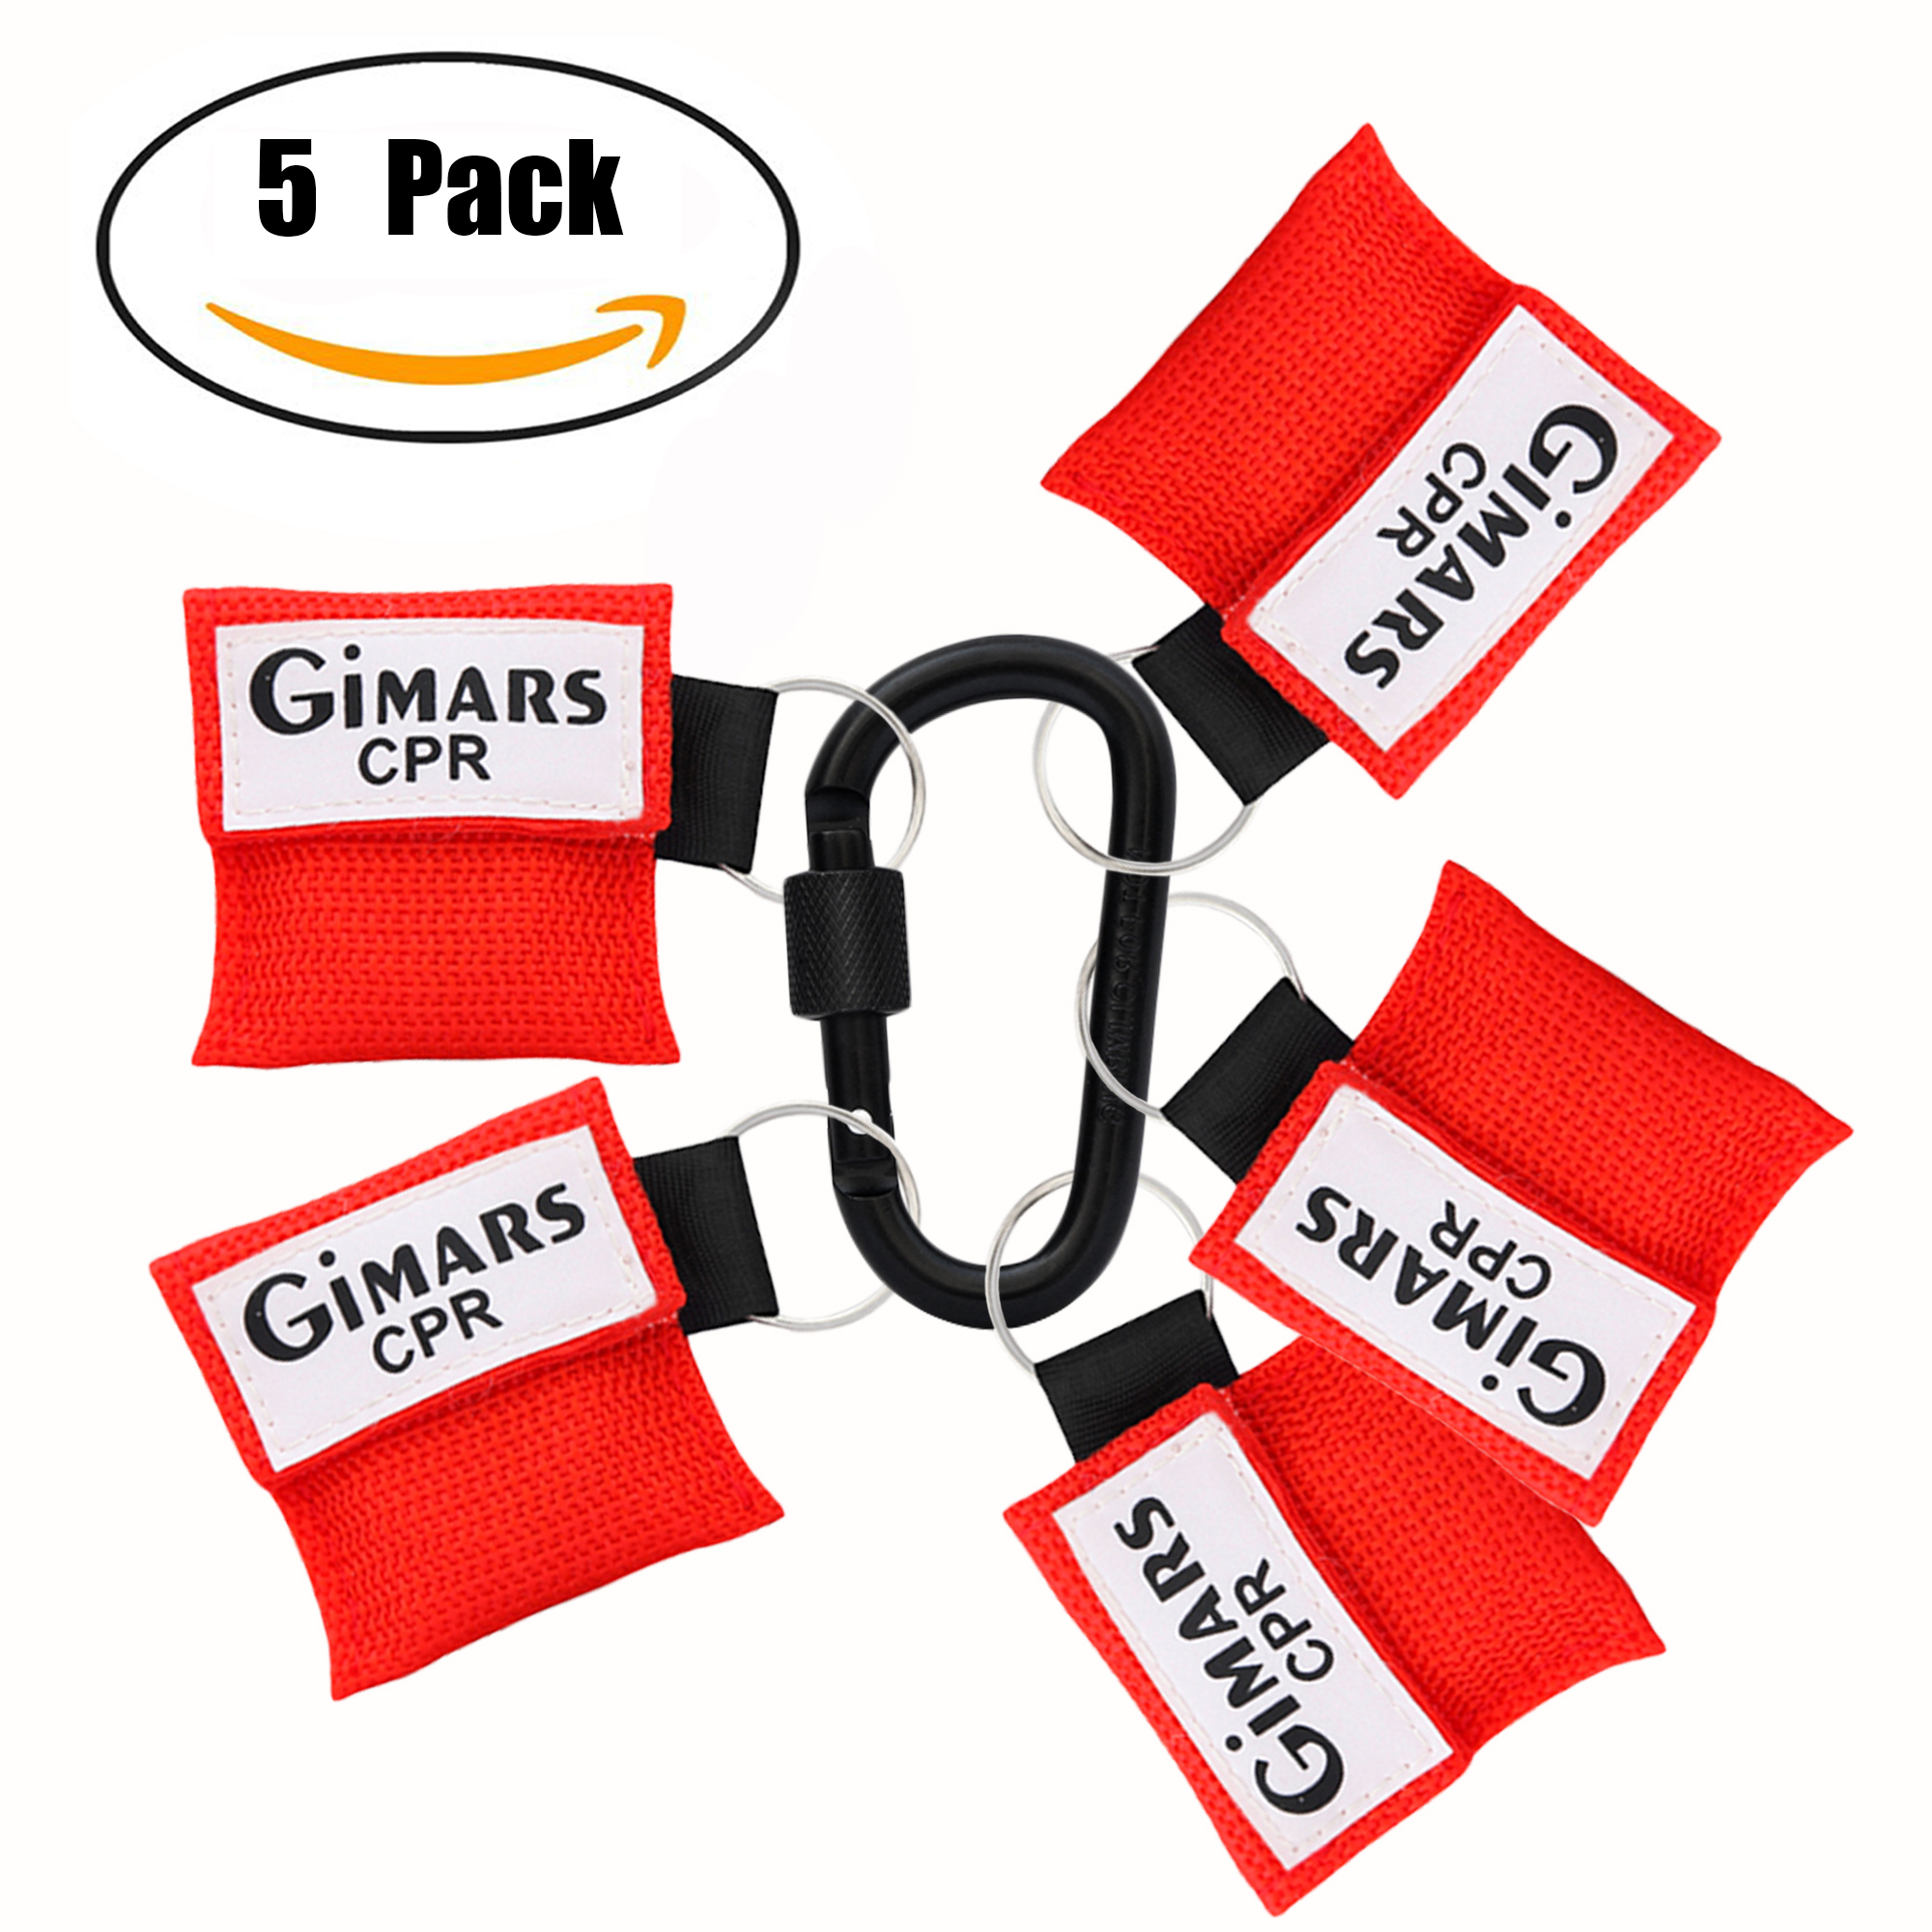 Gimars CPR Face Mask Rescue Face Shield with Key Chain One-way Valve Breathing Barrier for First Aid CPR Training Emergency 5 Pack